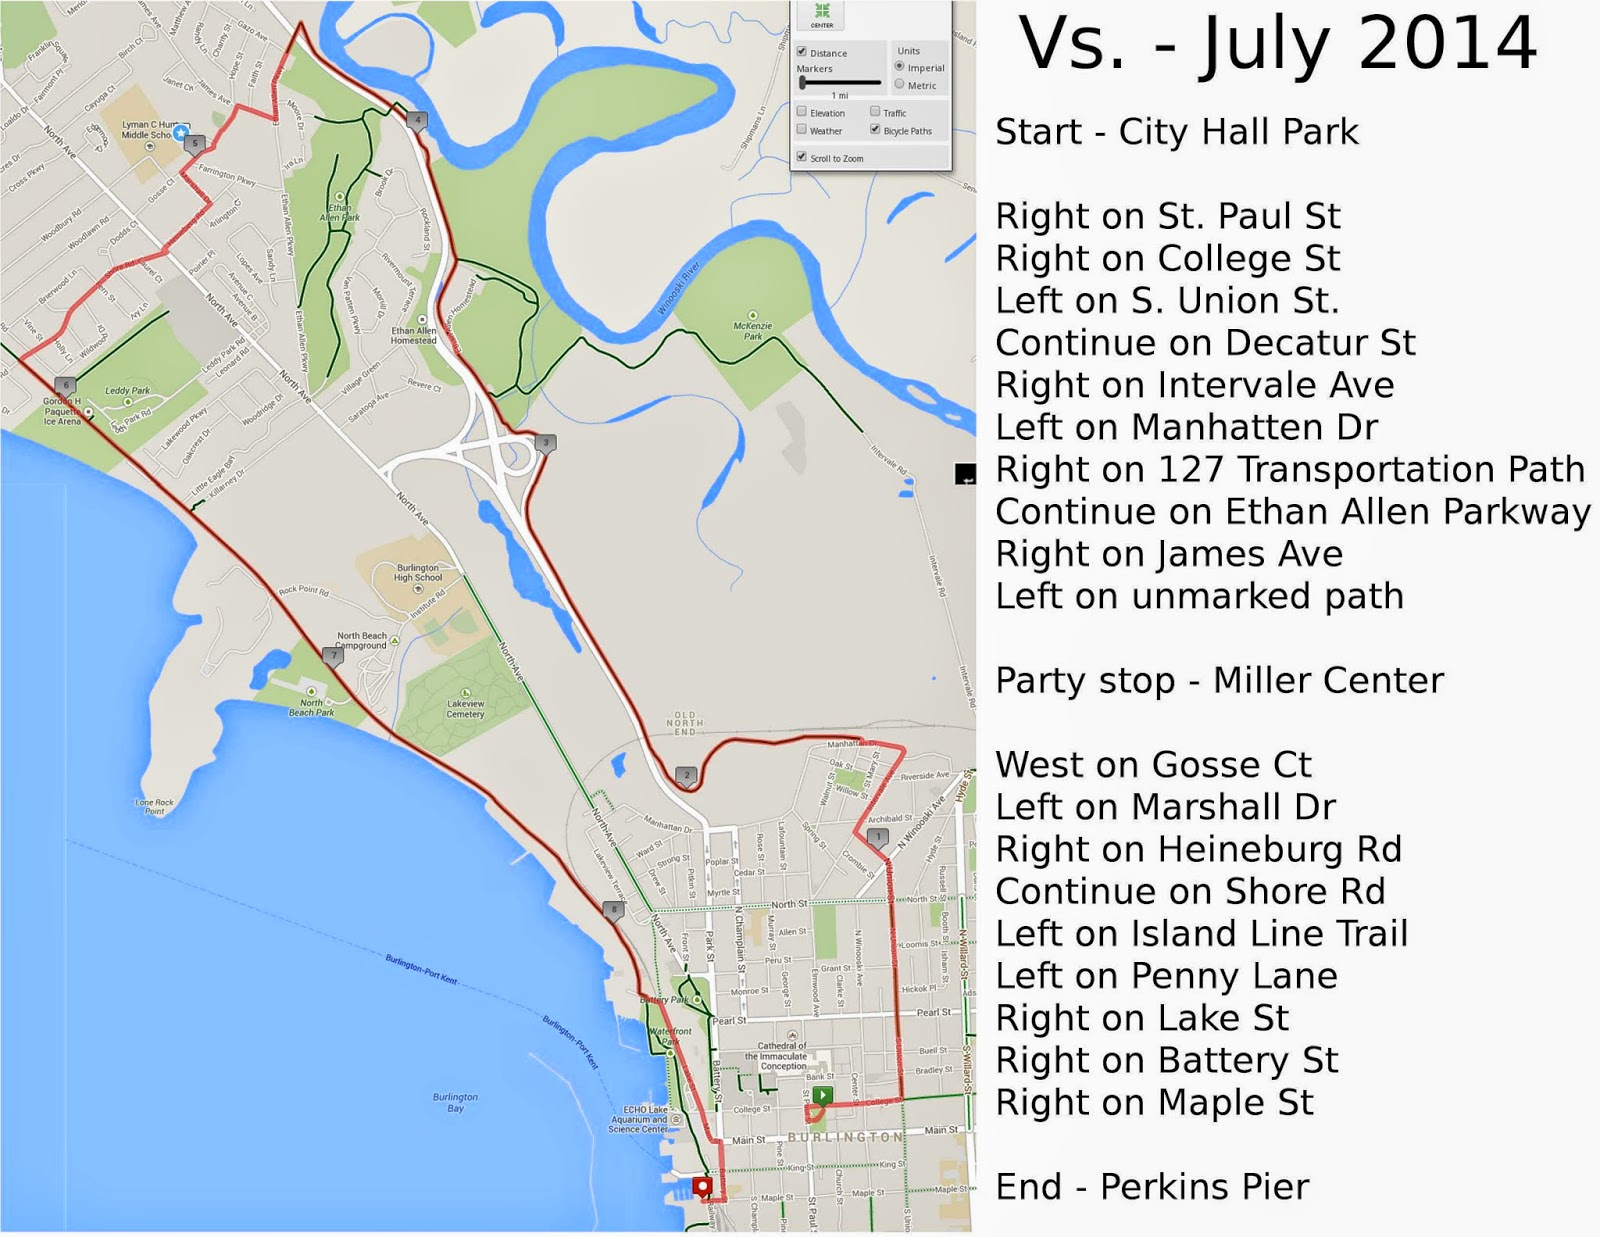 Vs. - July 2014 Route